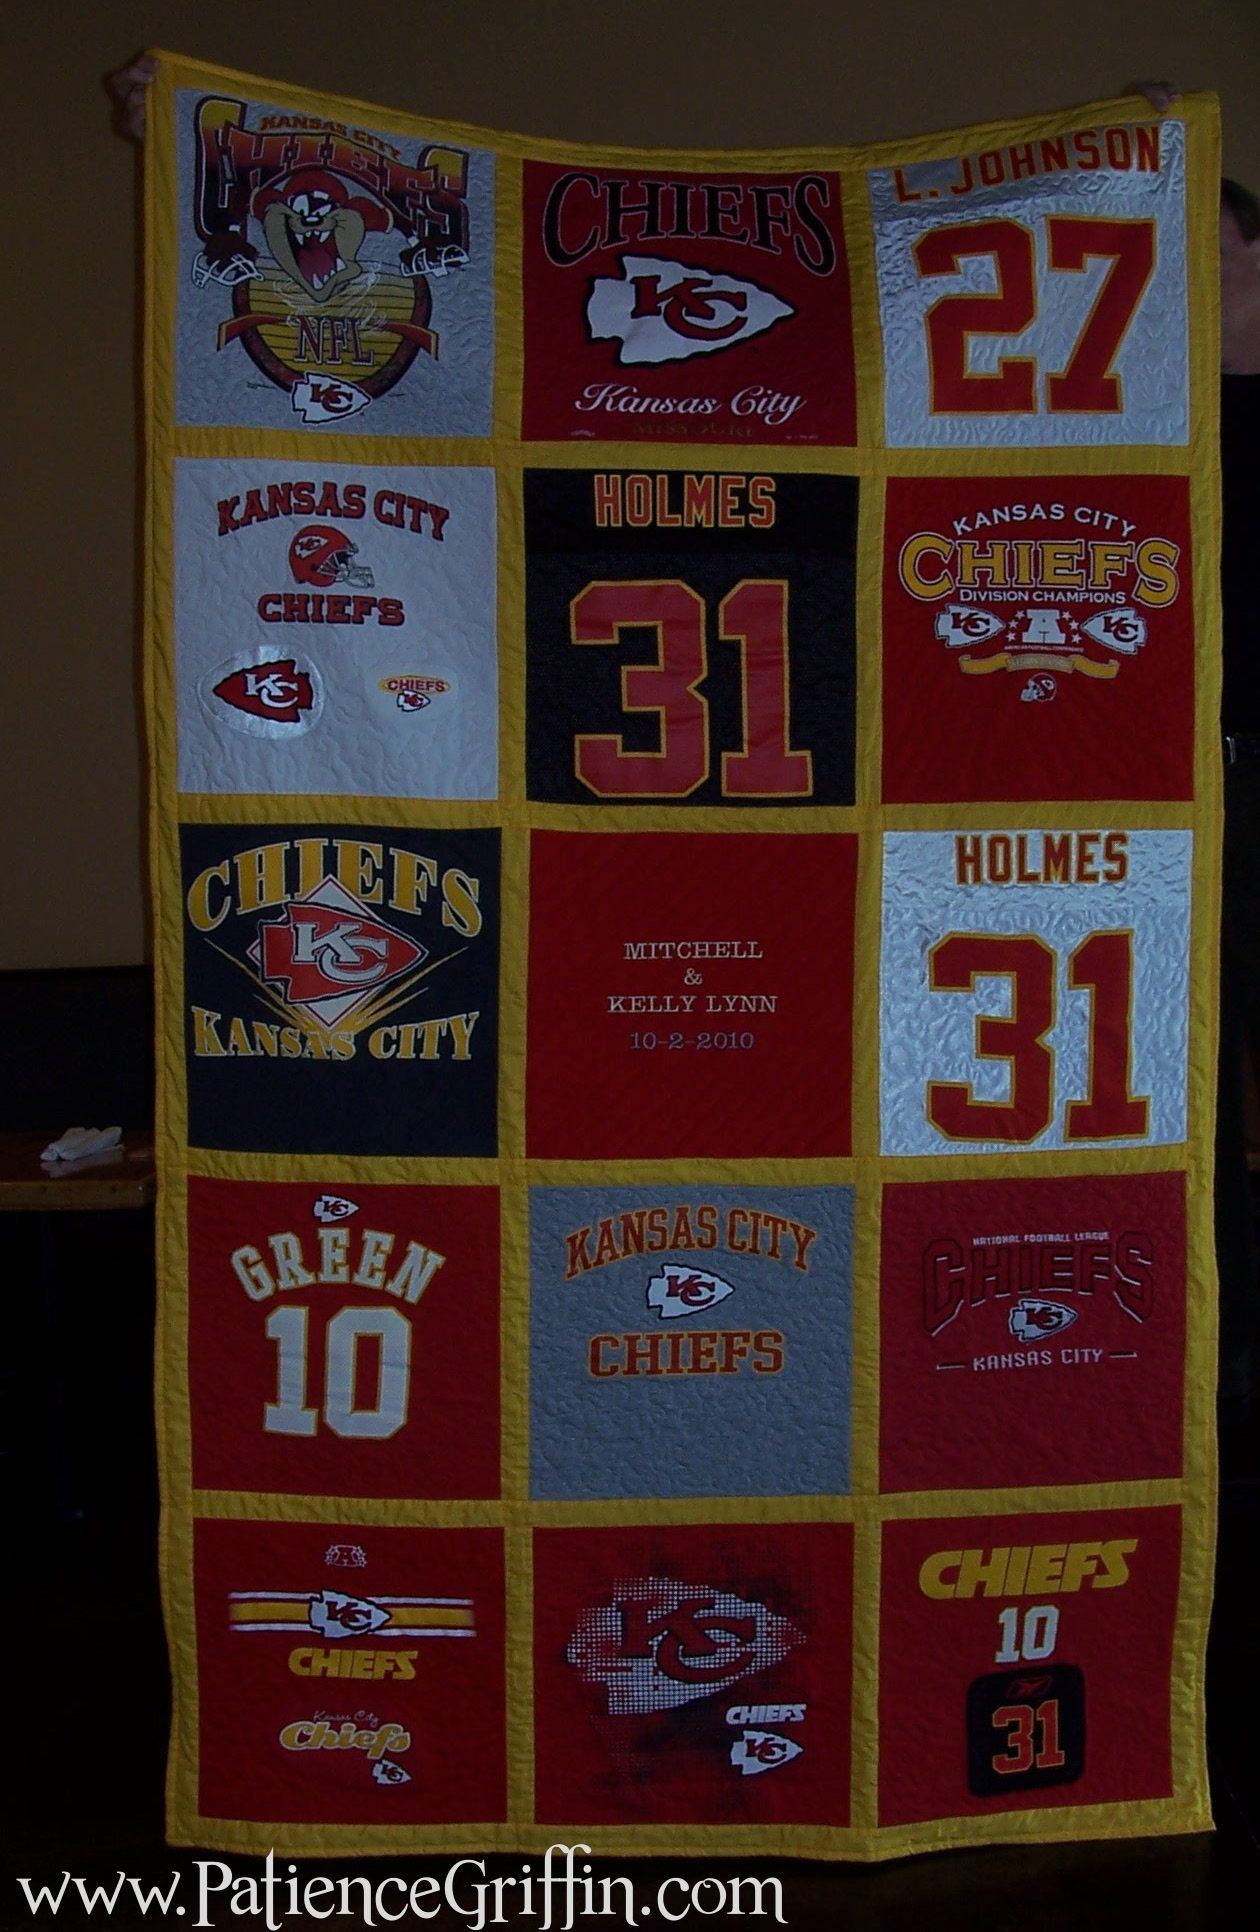 1000+ images about My Beloved Kansas City Chiefs on Pinterest ...